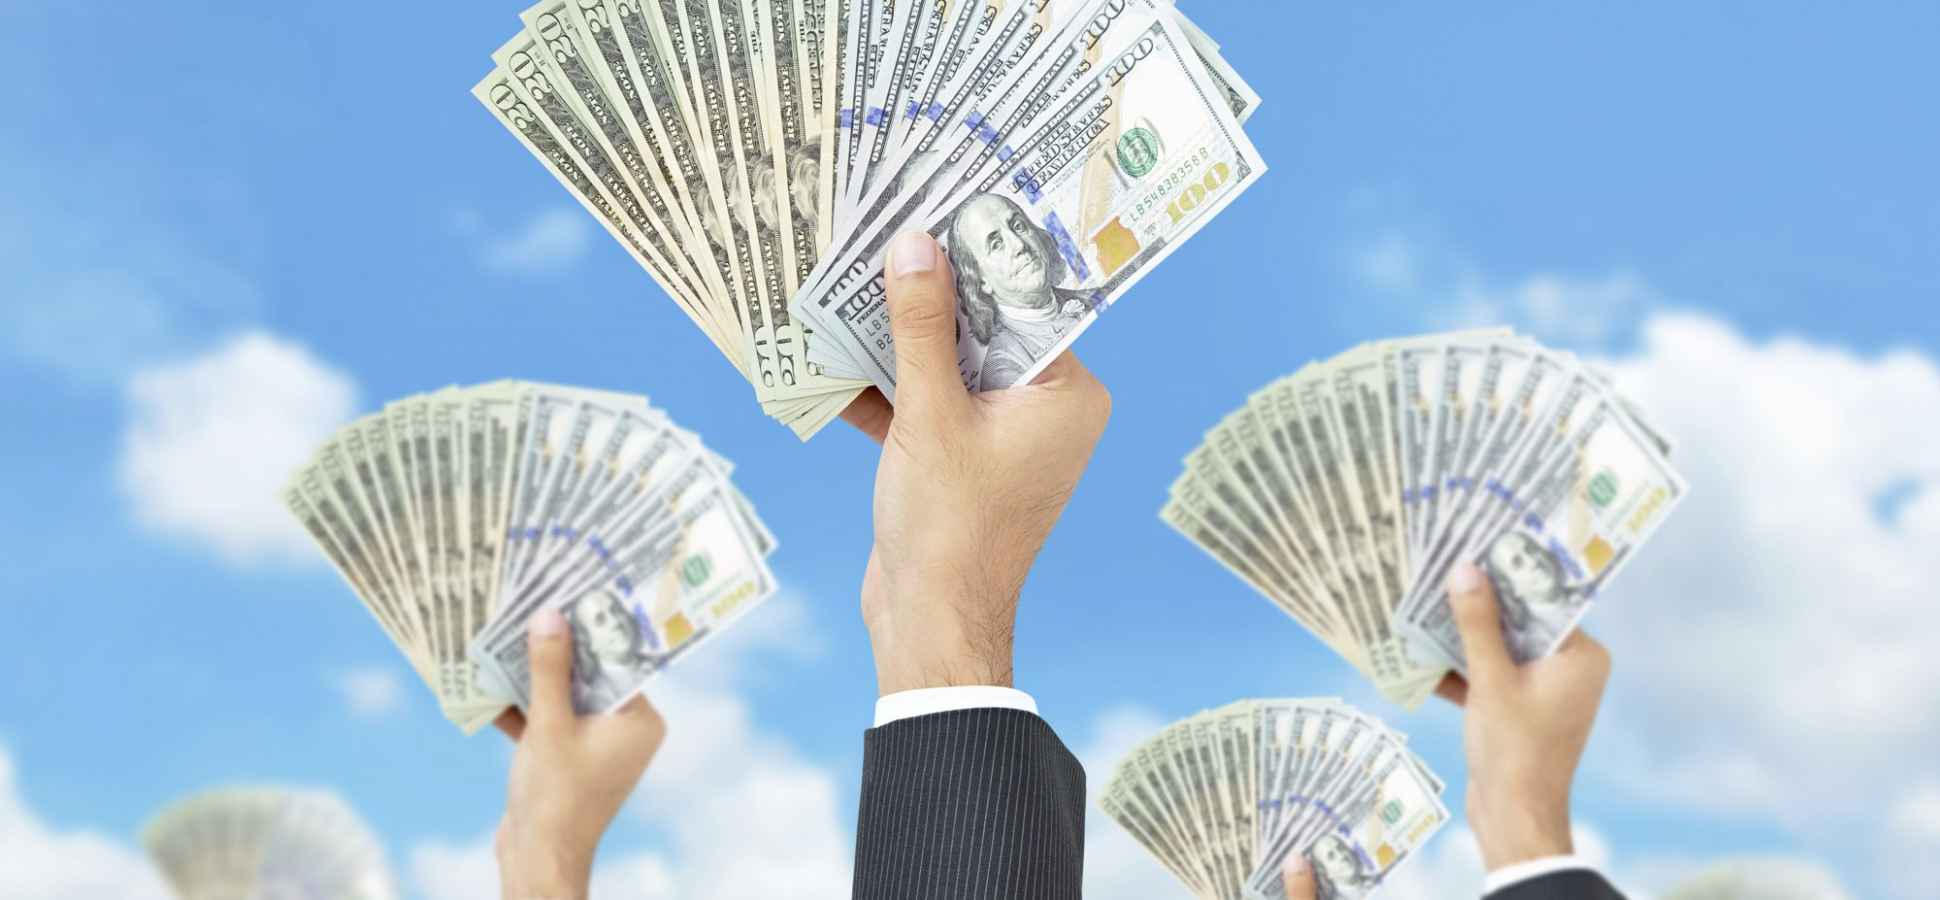 5 Strategies To Beat Your Crowdfunding Goals In A Matter Of Days